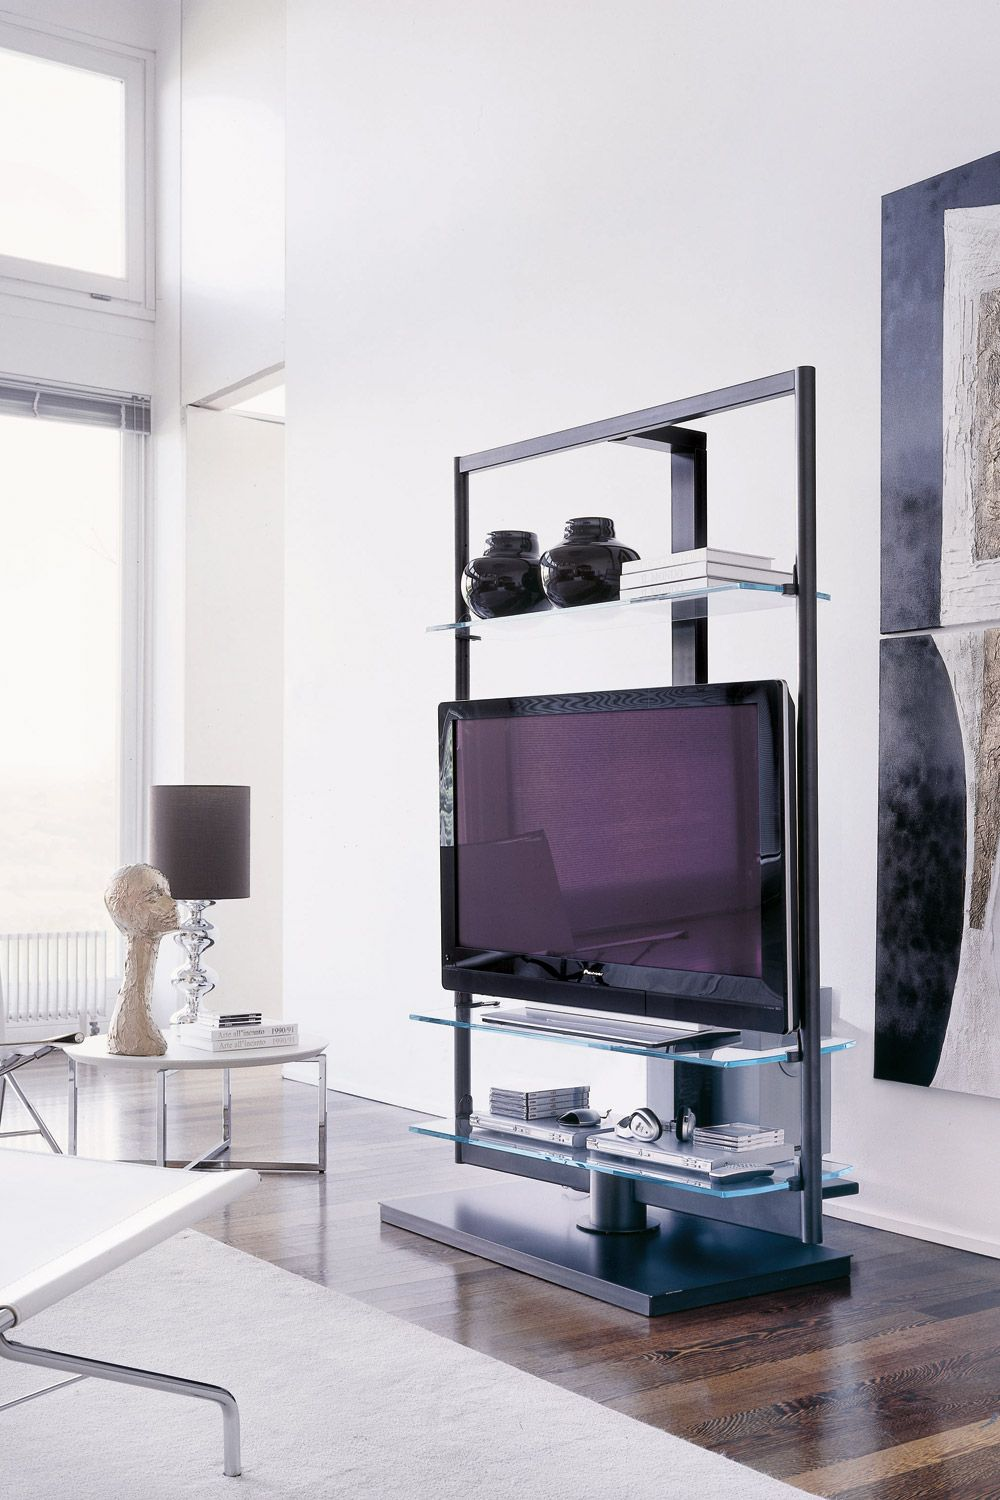 Porada Porta Tv Ubiqua.Porada Tv Stand En Ubiqua Minimalist Home Decor